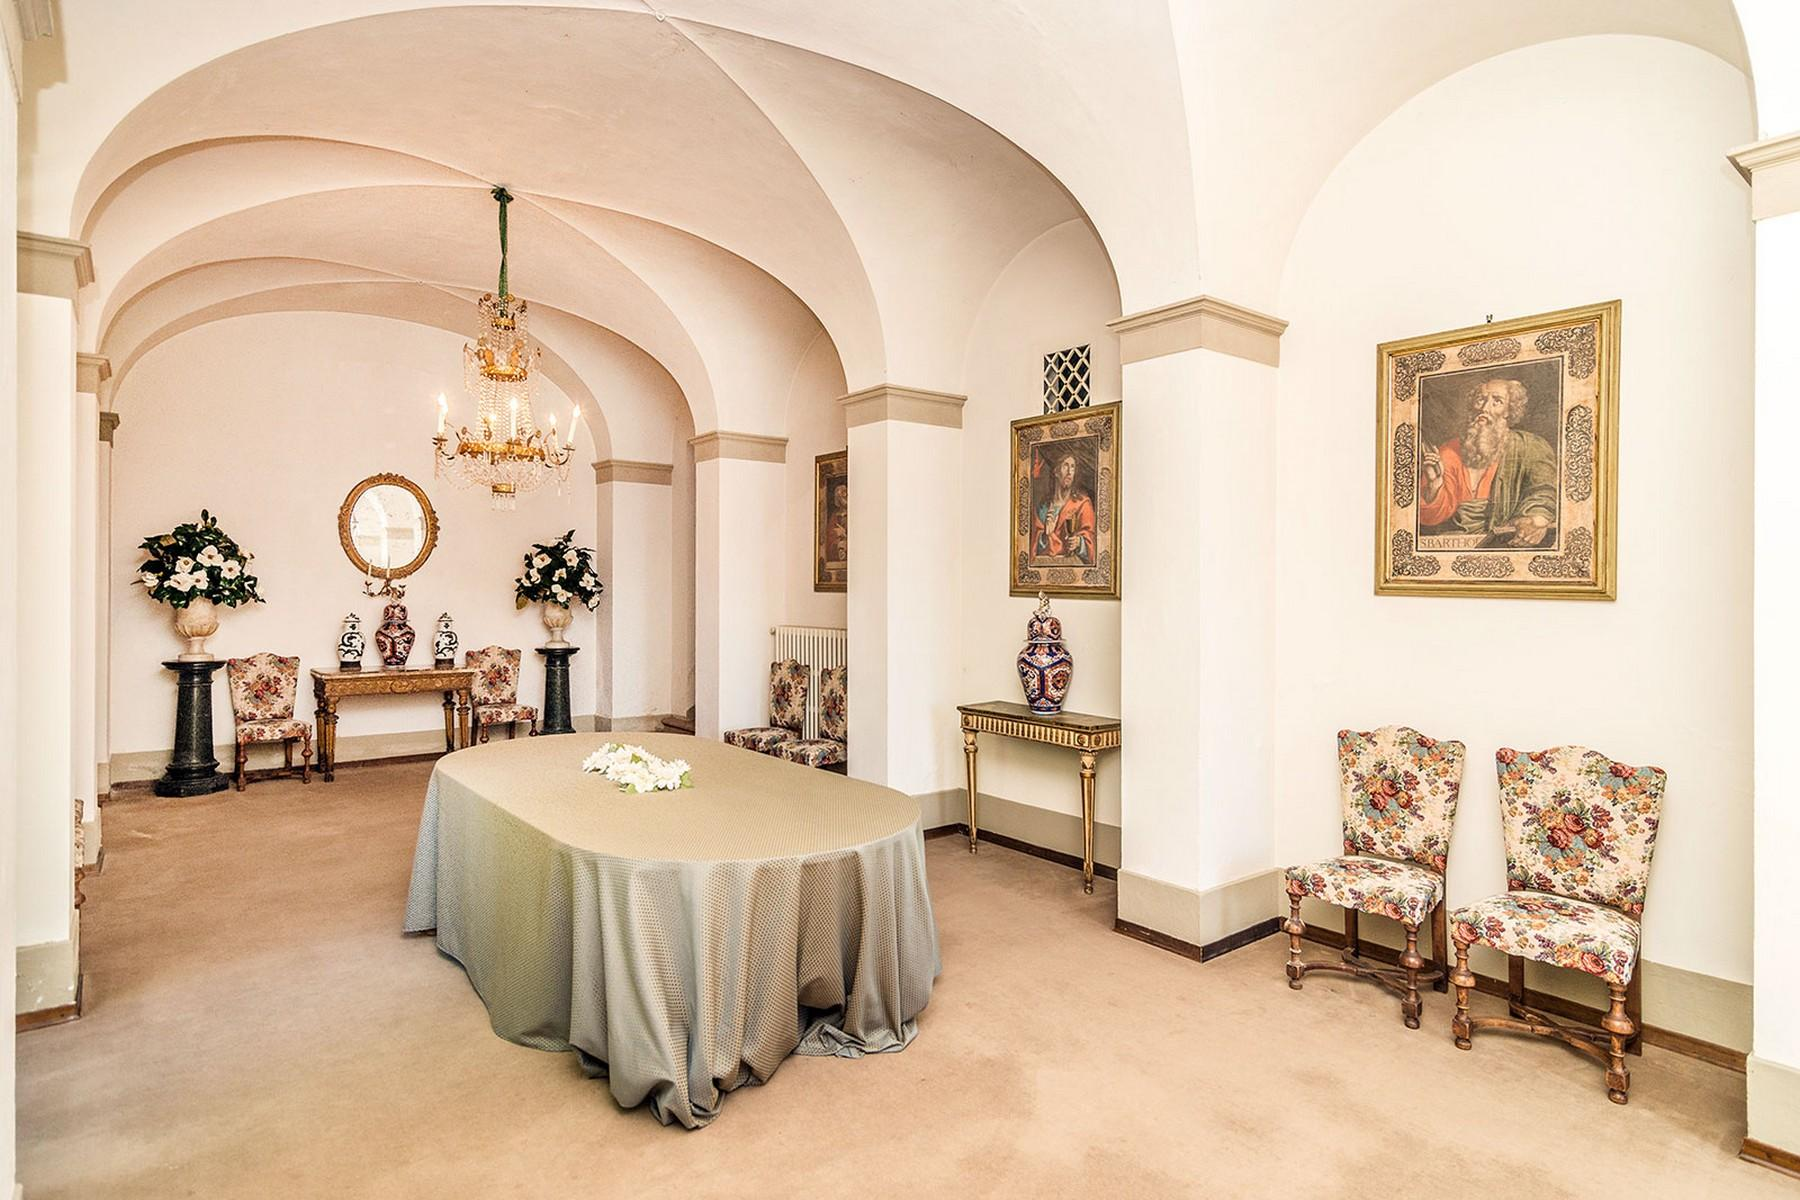 Incomparable historic mansion in Lucchesia - 18